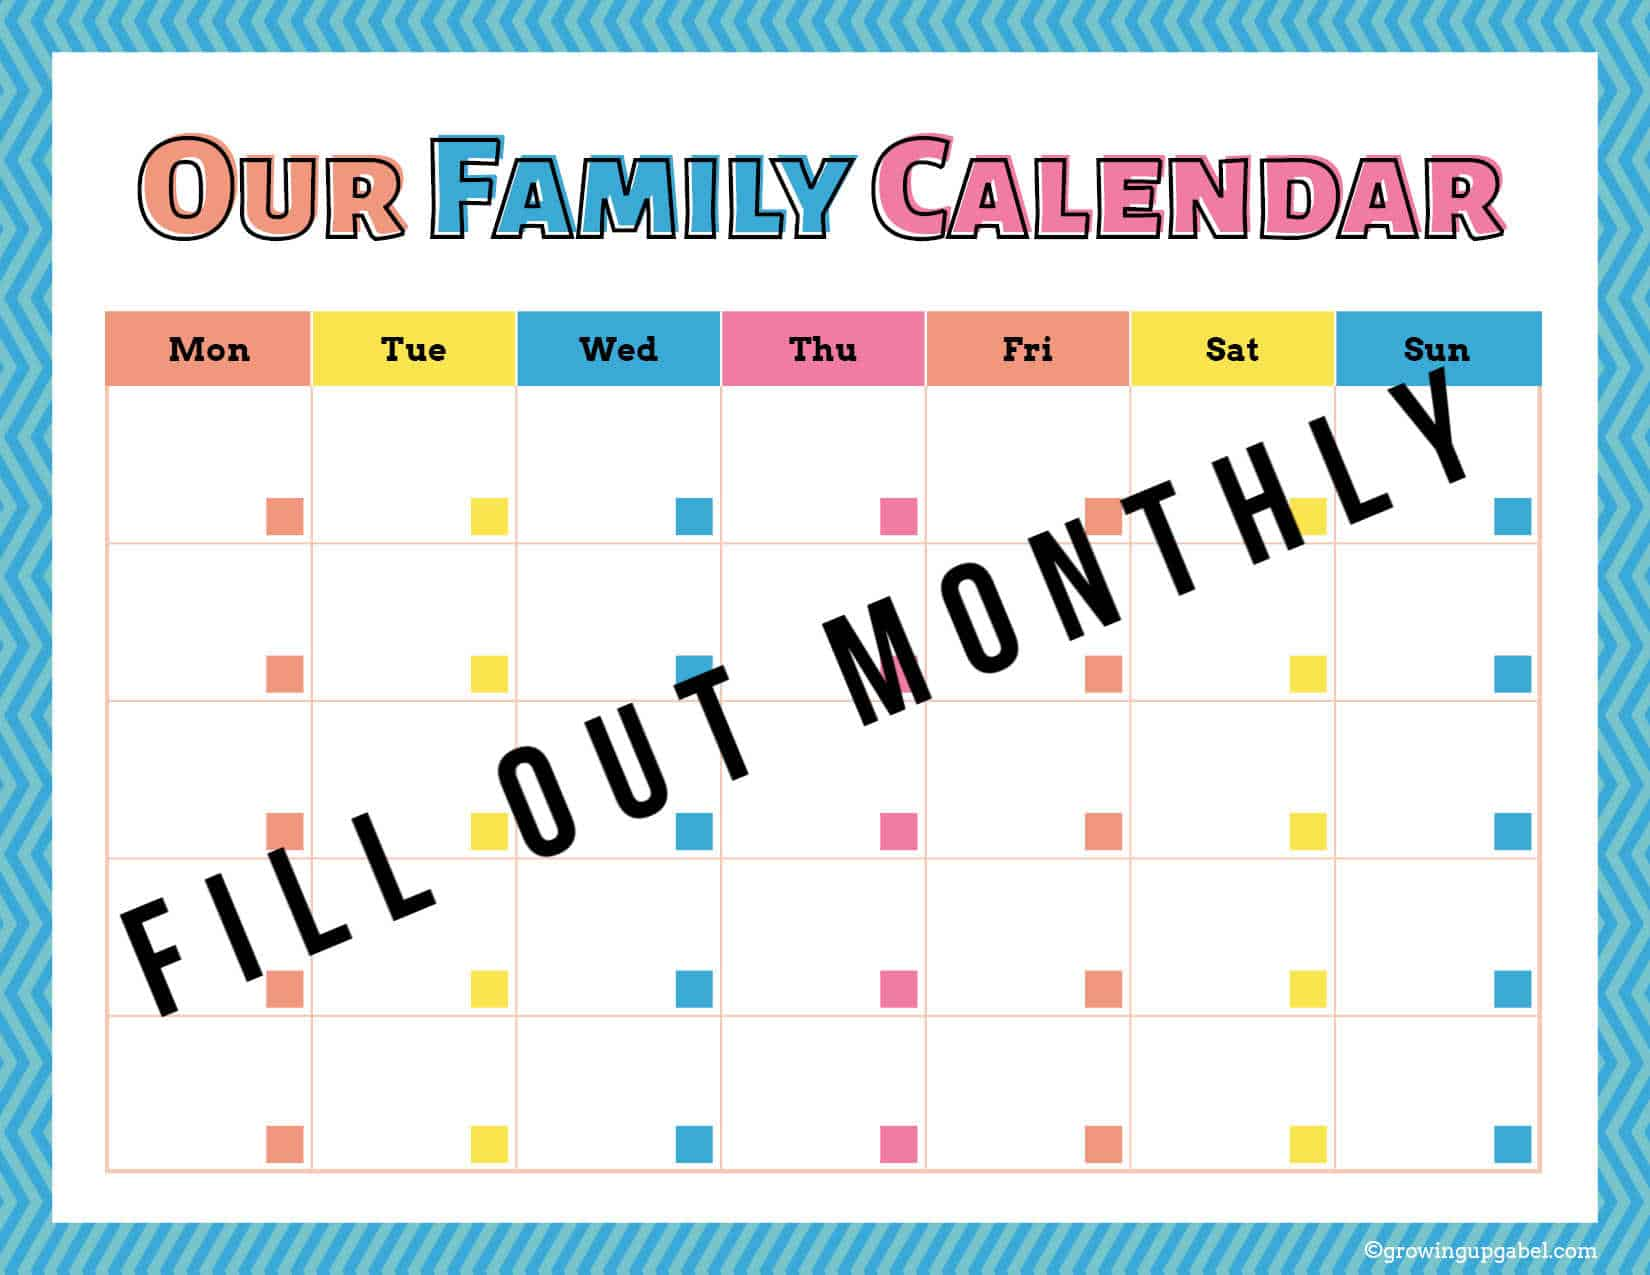 Our Family Calendar printable calendar